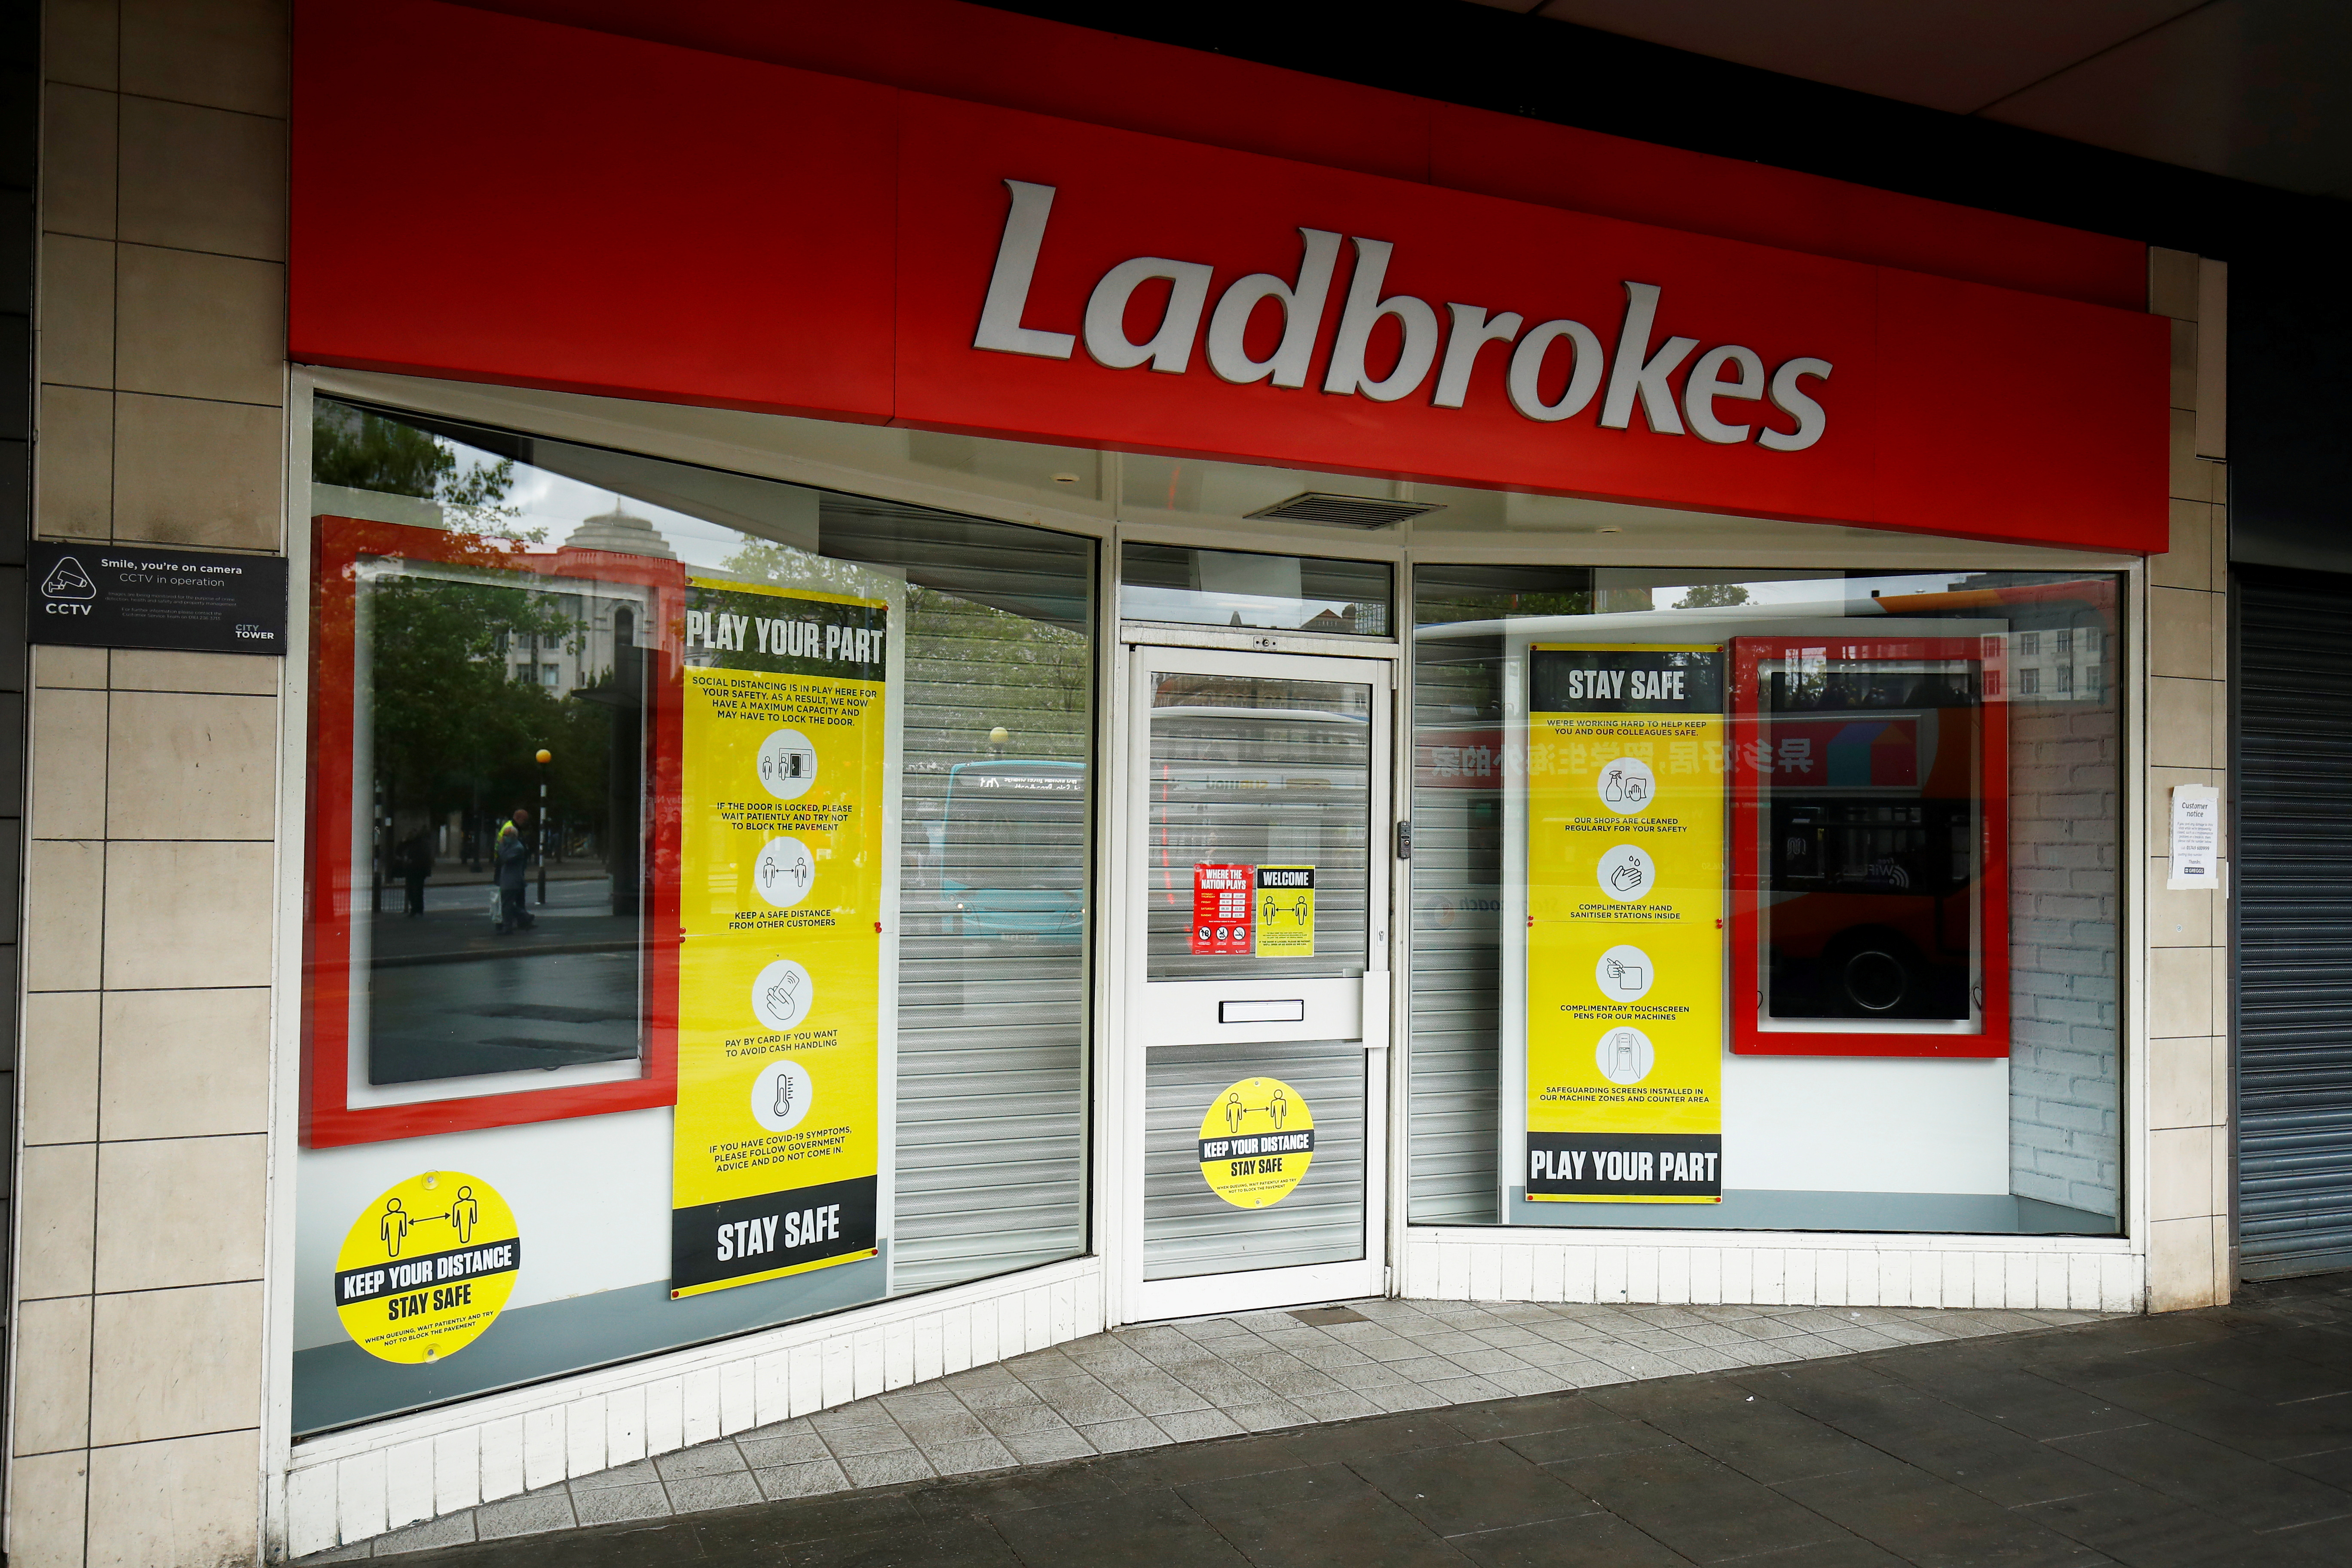 A closed Ladbrokes is seen in Manchester, following the outbreak of the coronavirus disease (COVID-19), Manchester, Britain, June 12, 2020. REUTERS/Jason Cairnduff/File Photo